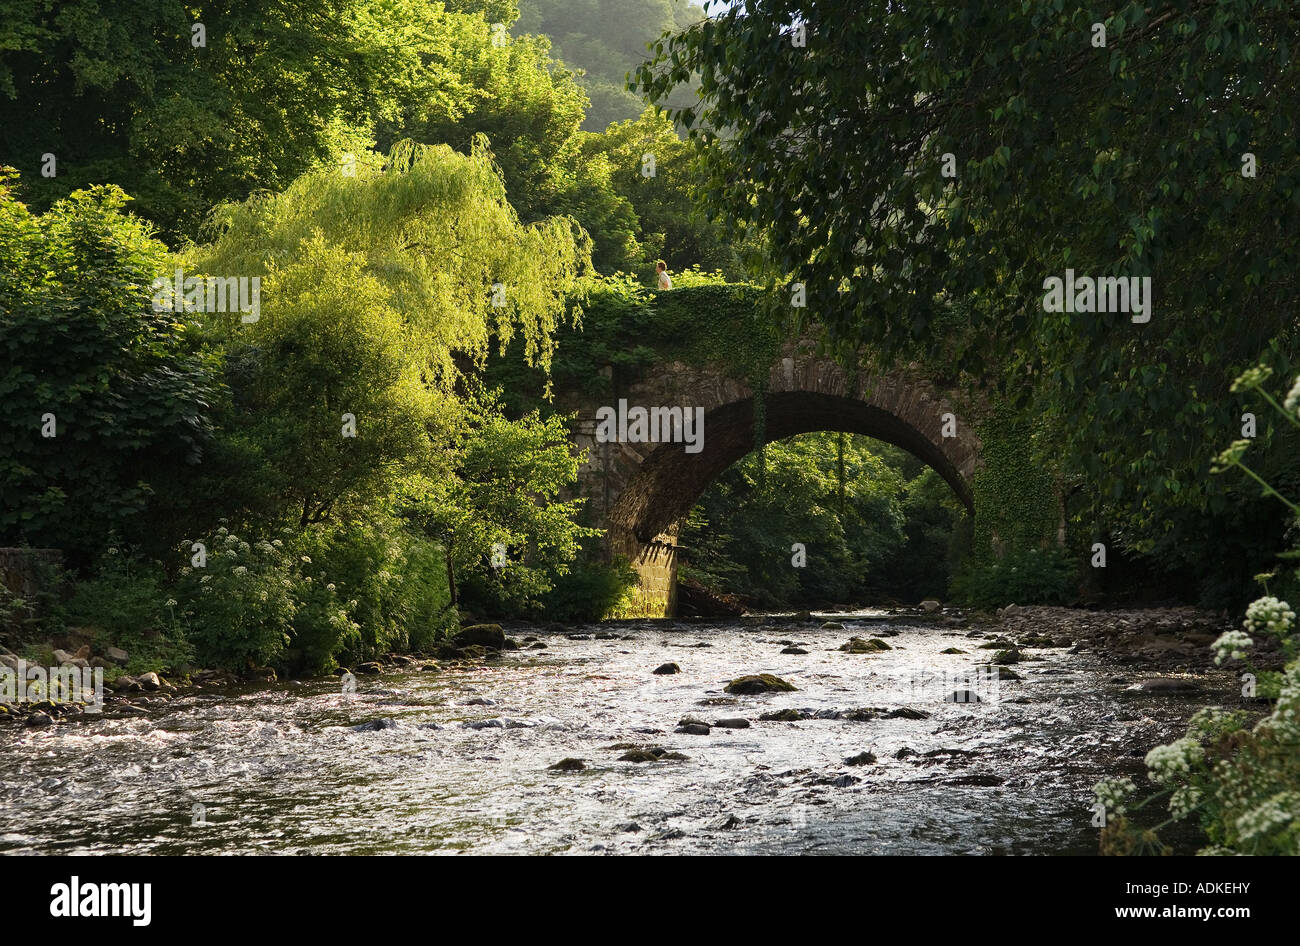 The Avonbeg River joins the Avonmore River to become the Avoca River at 'The Meeting of the Waters' Co. - Stock Image